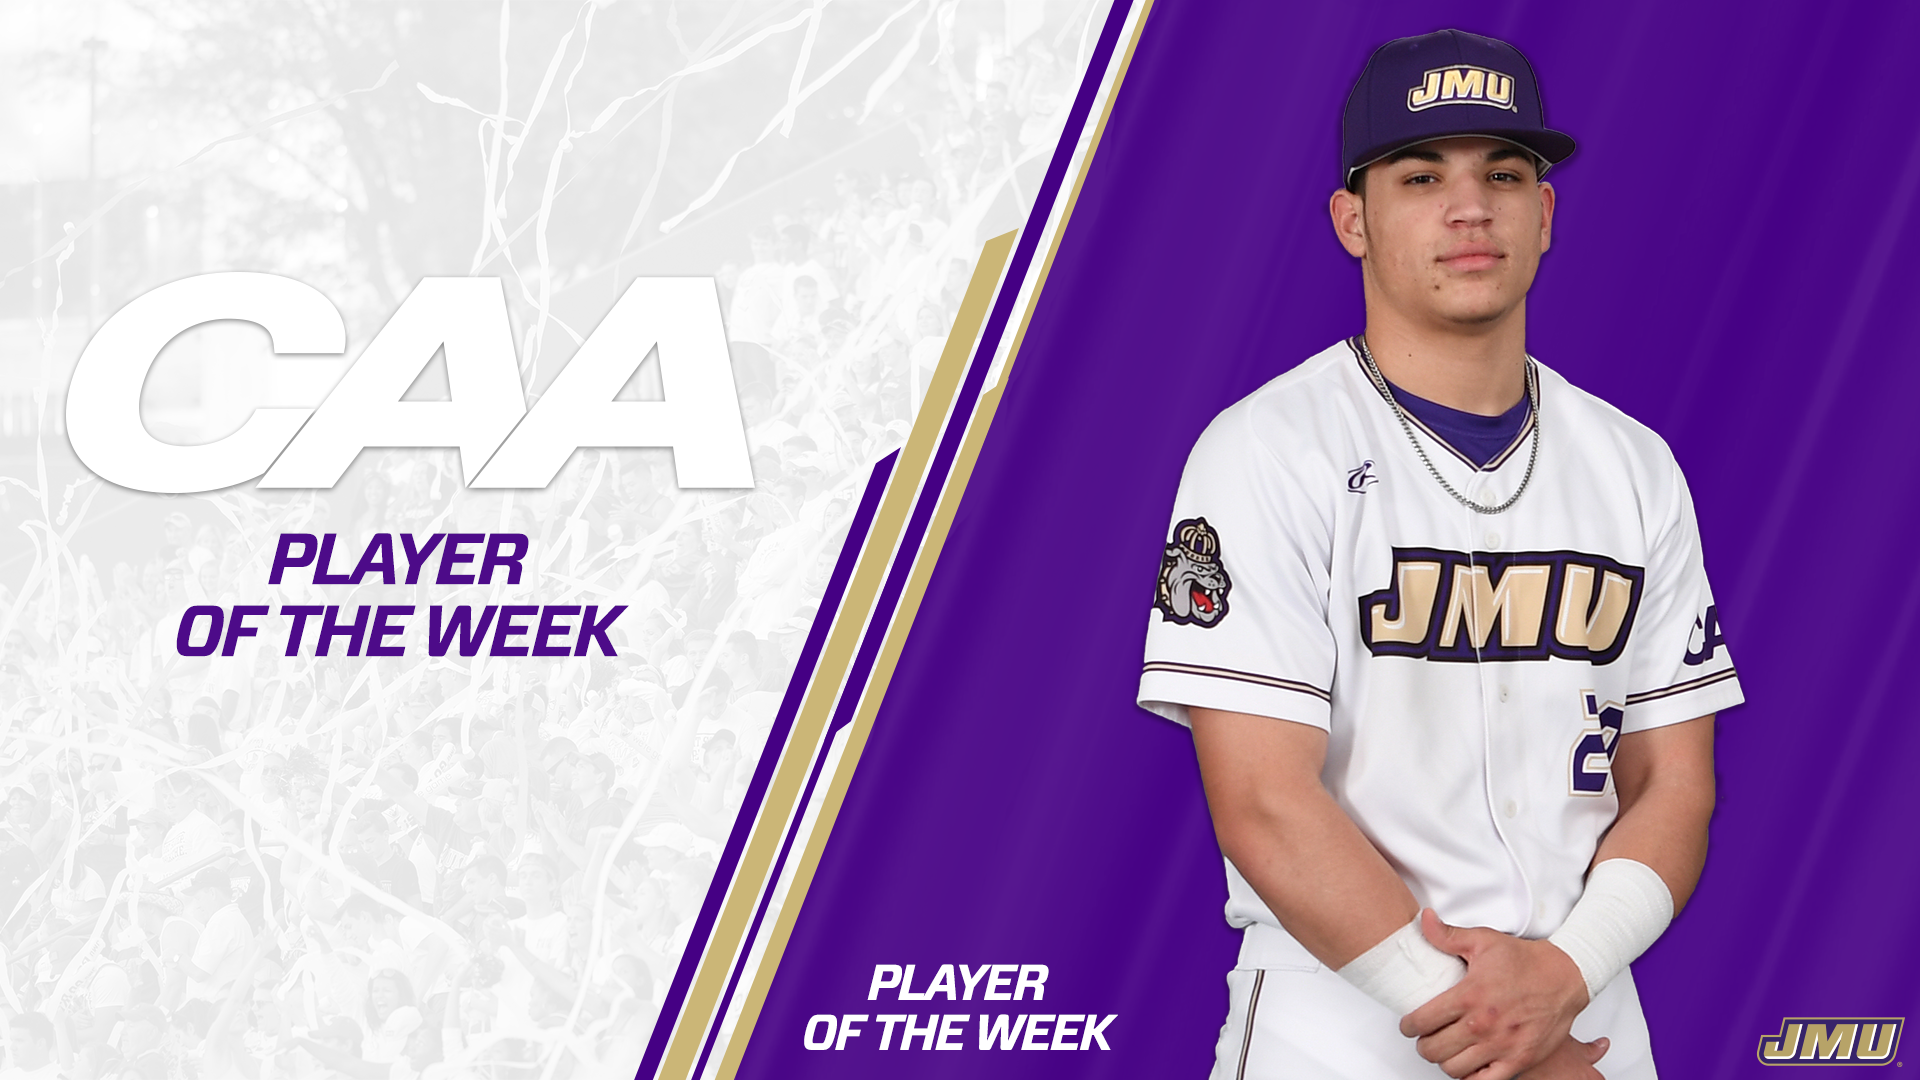 Baseball: Dabney Earns Second Player of the Week Honor